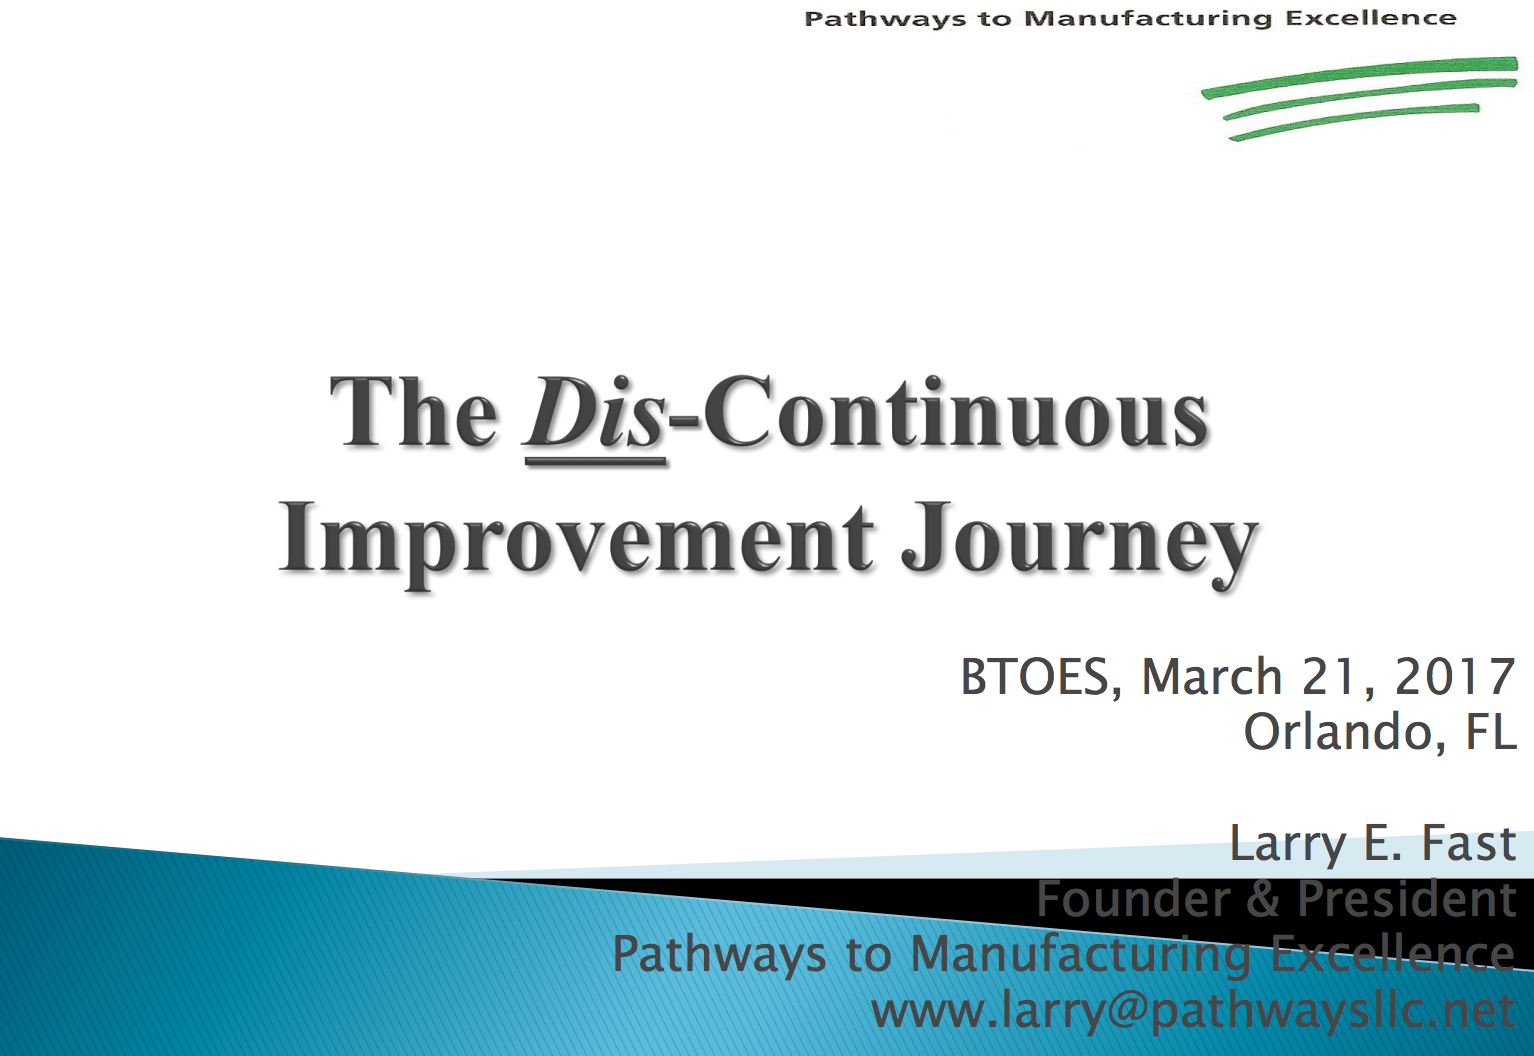 The Dis-Continuous Improvement Journey